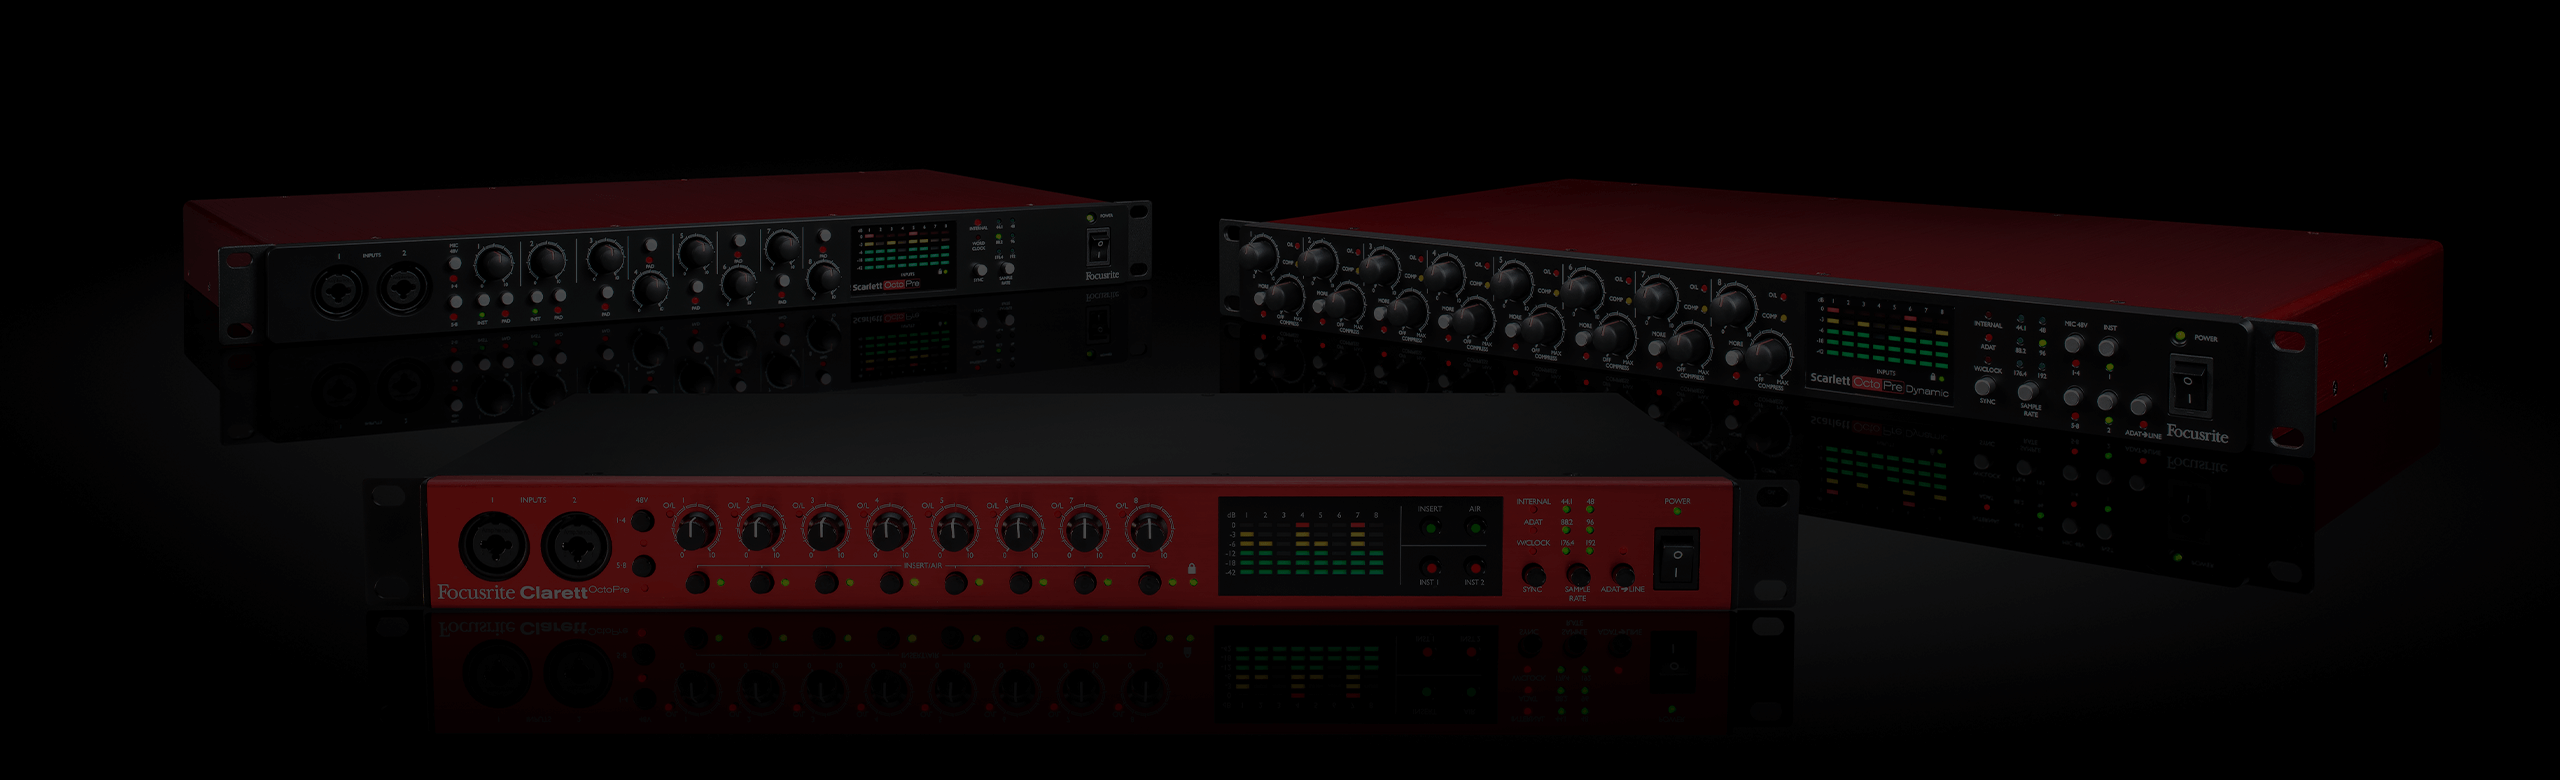 Image of three ADAT expansion interfaces